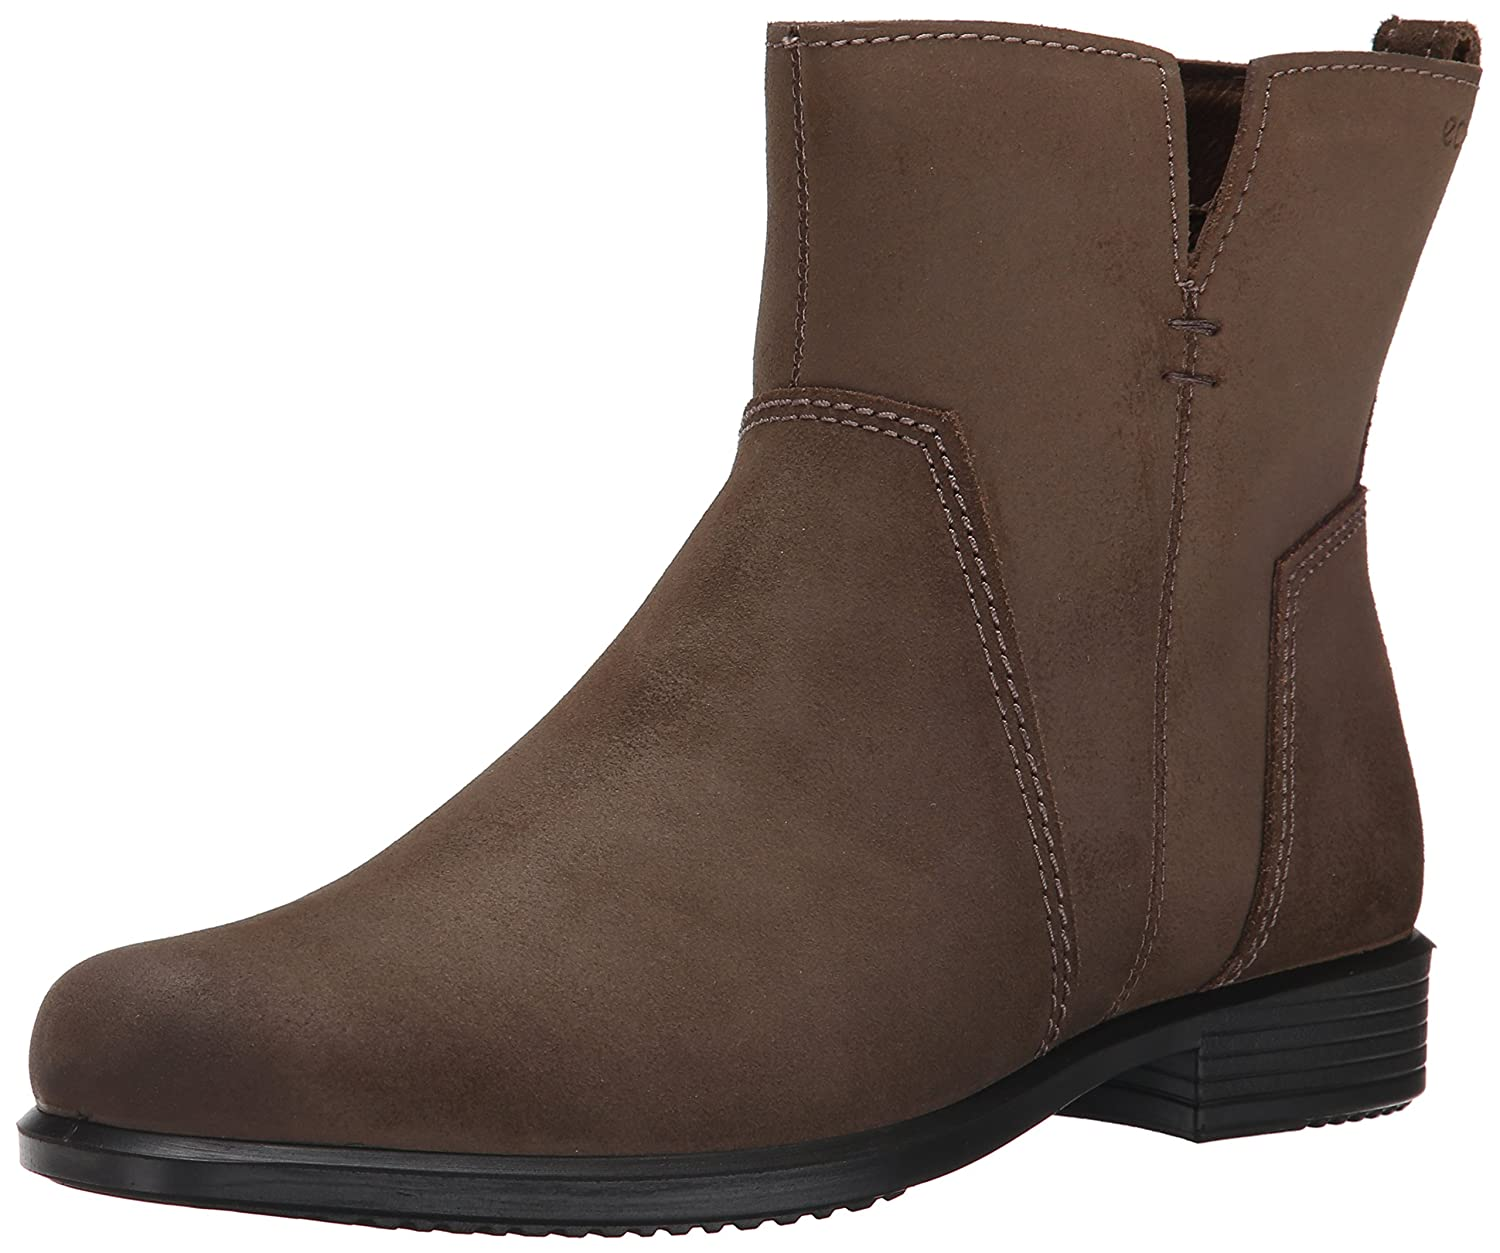 Birch ECCO shoes Women's Touch 25 B Oil Suede Casual Boot